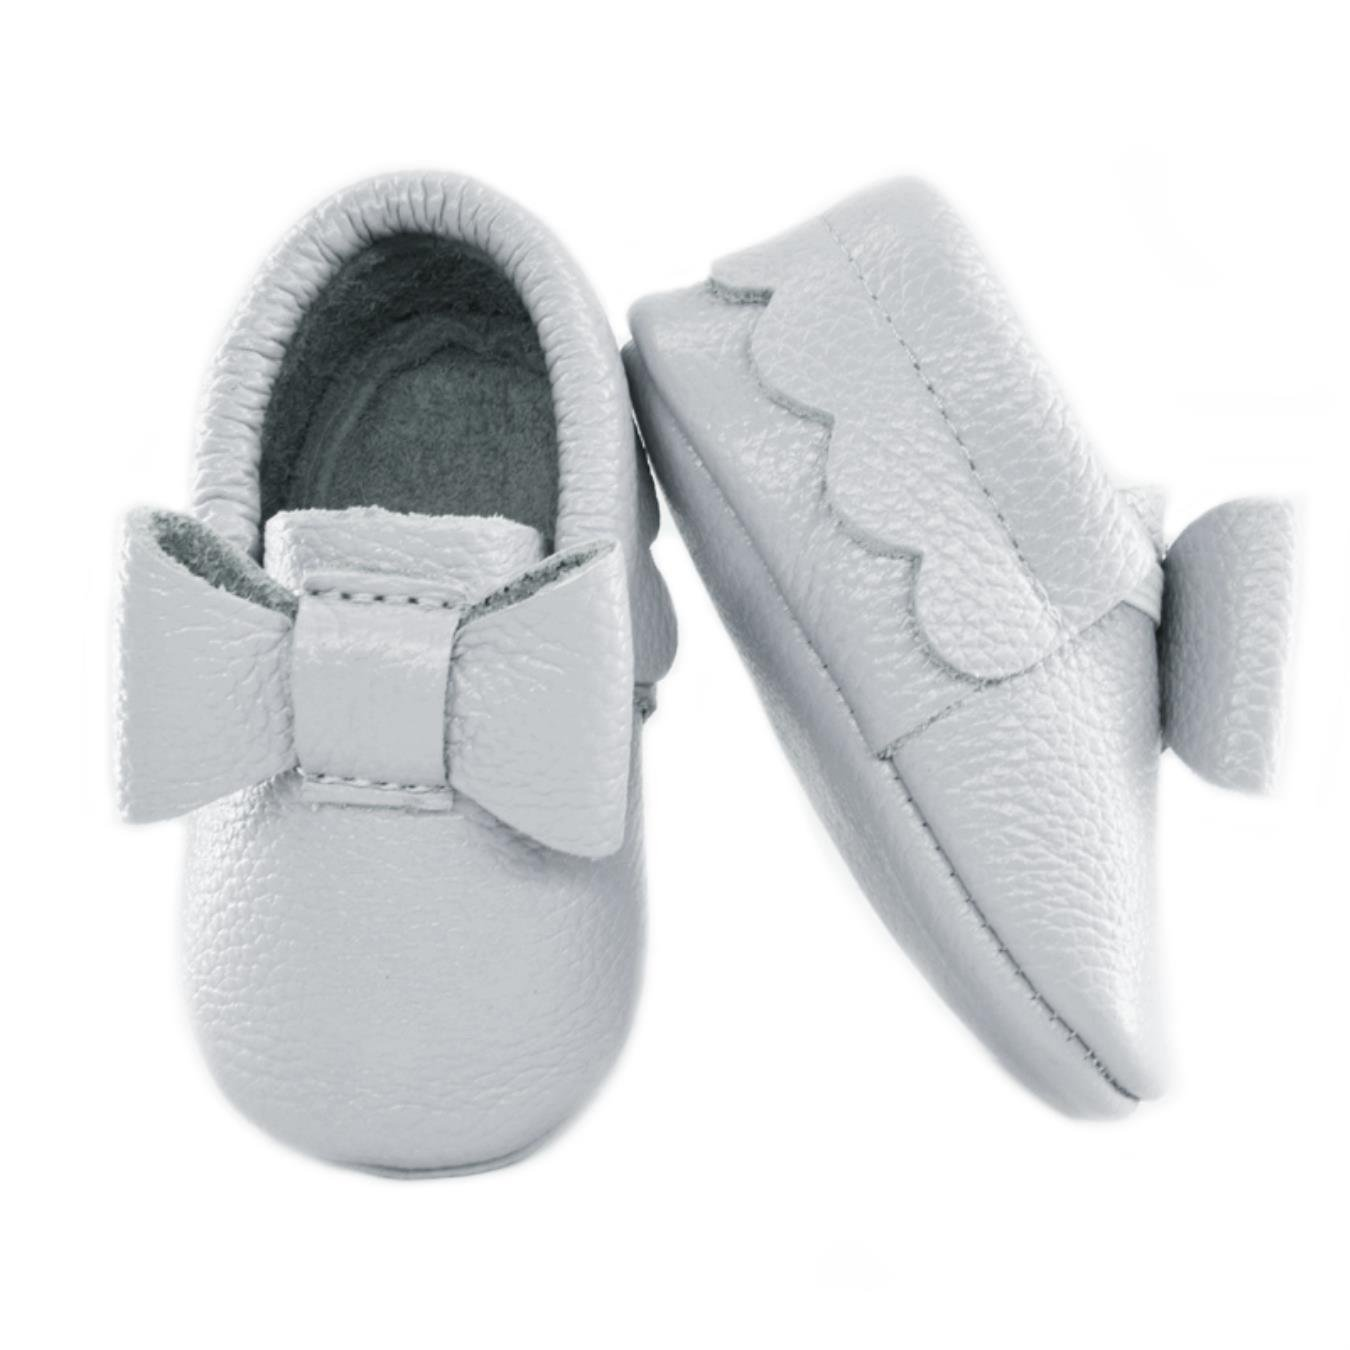 3f76fd54ed59 Amazon.com  new born flower Baby moccasins of Moccs baby shoes girls fringe  Soft genuine leather infant toddler First Walkers kid shoes  Clothing